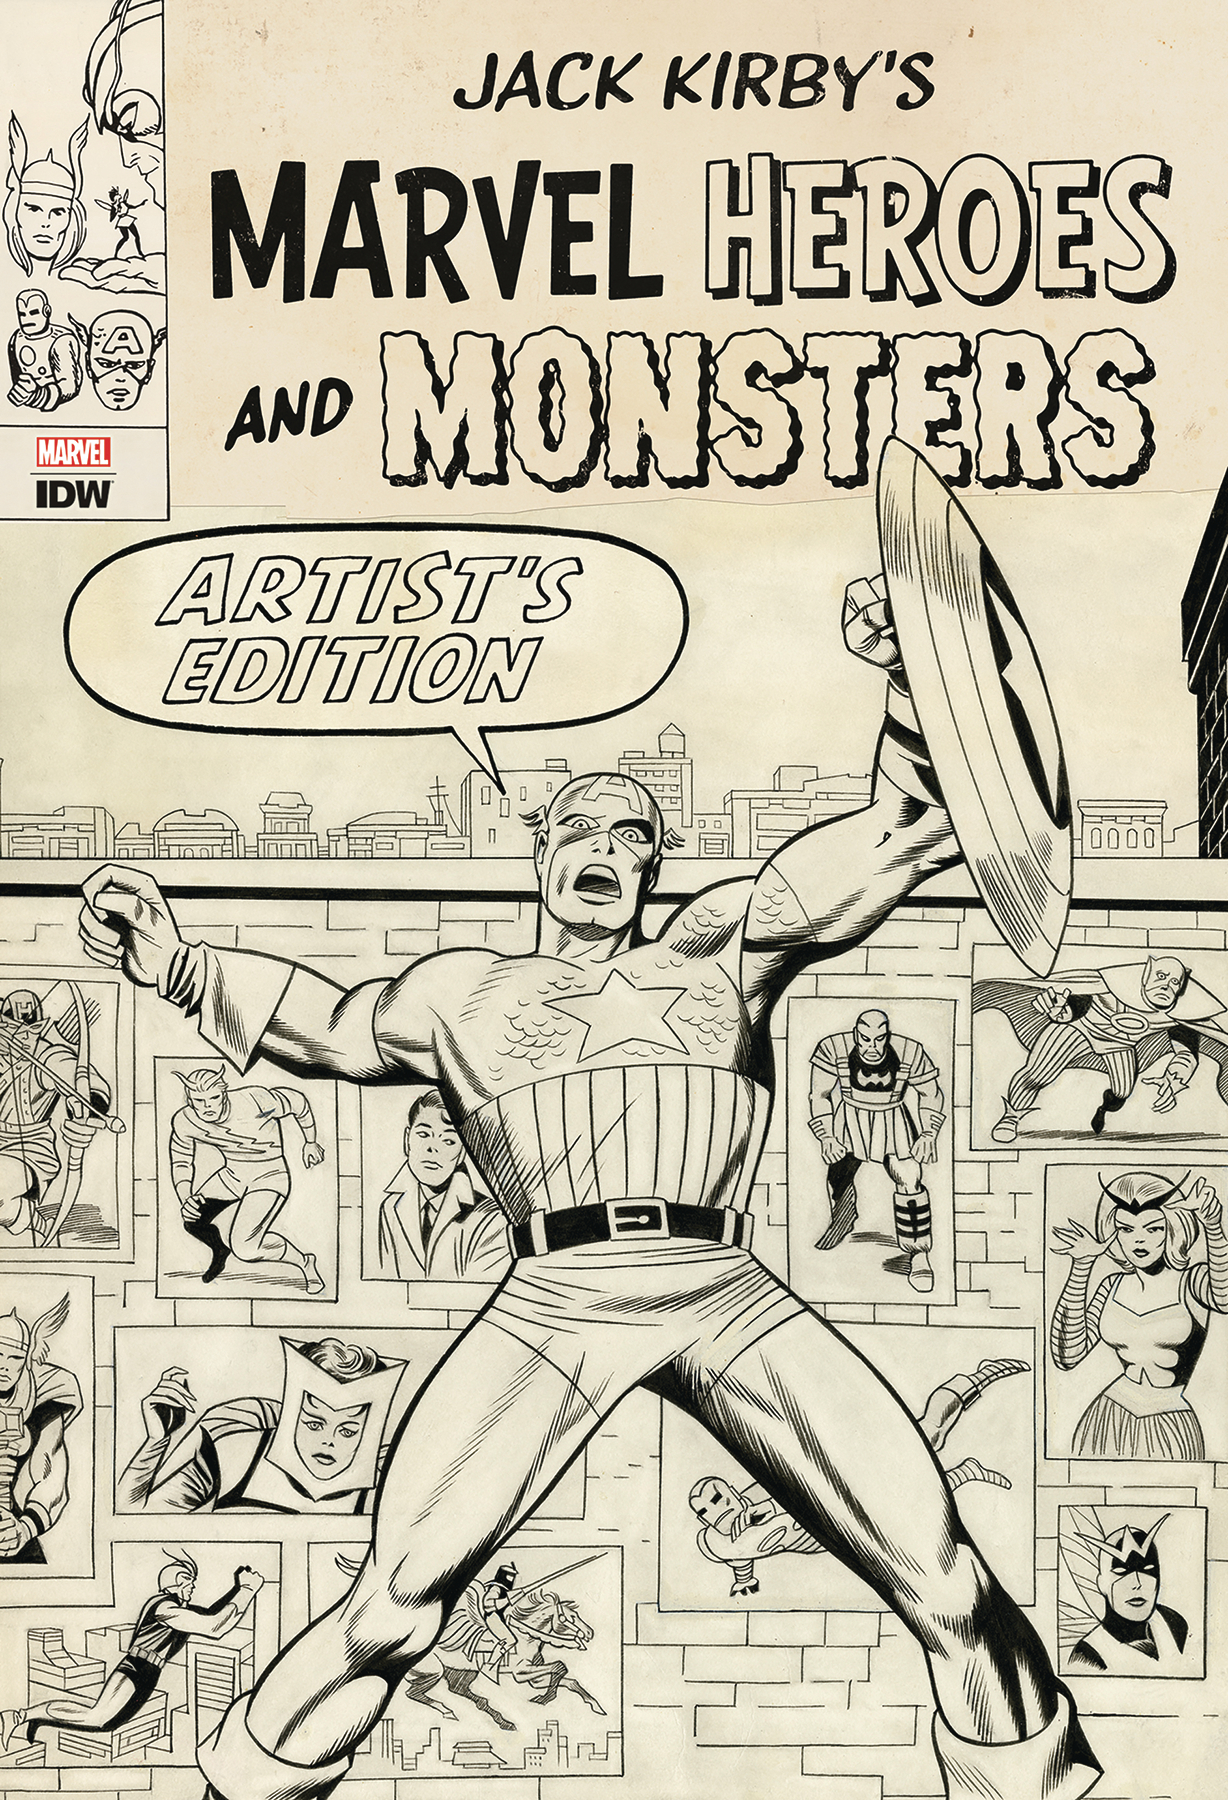 JACK KIRBY MARVEL HEROES & MONSTERS ARTIST ED HC